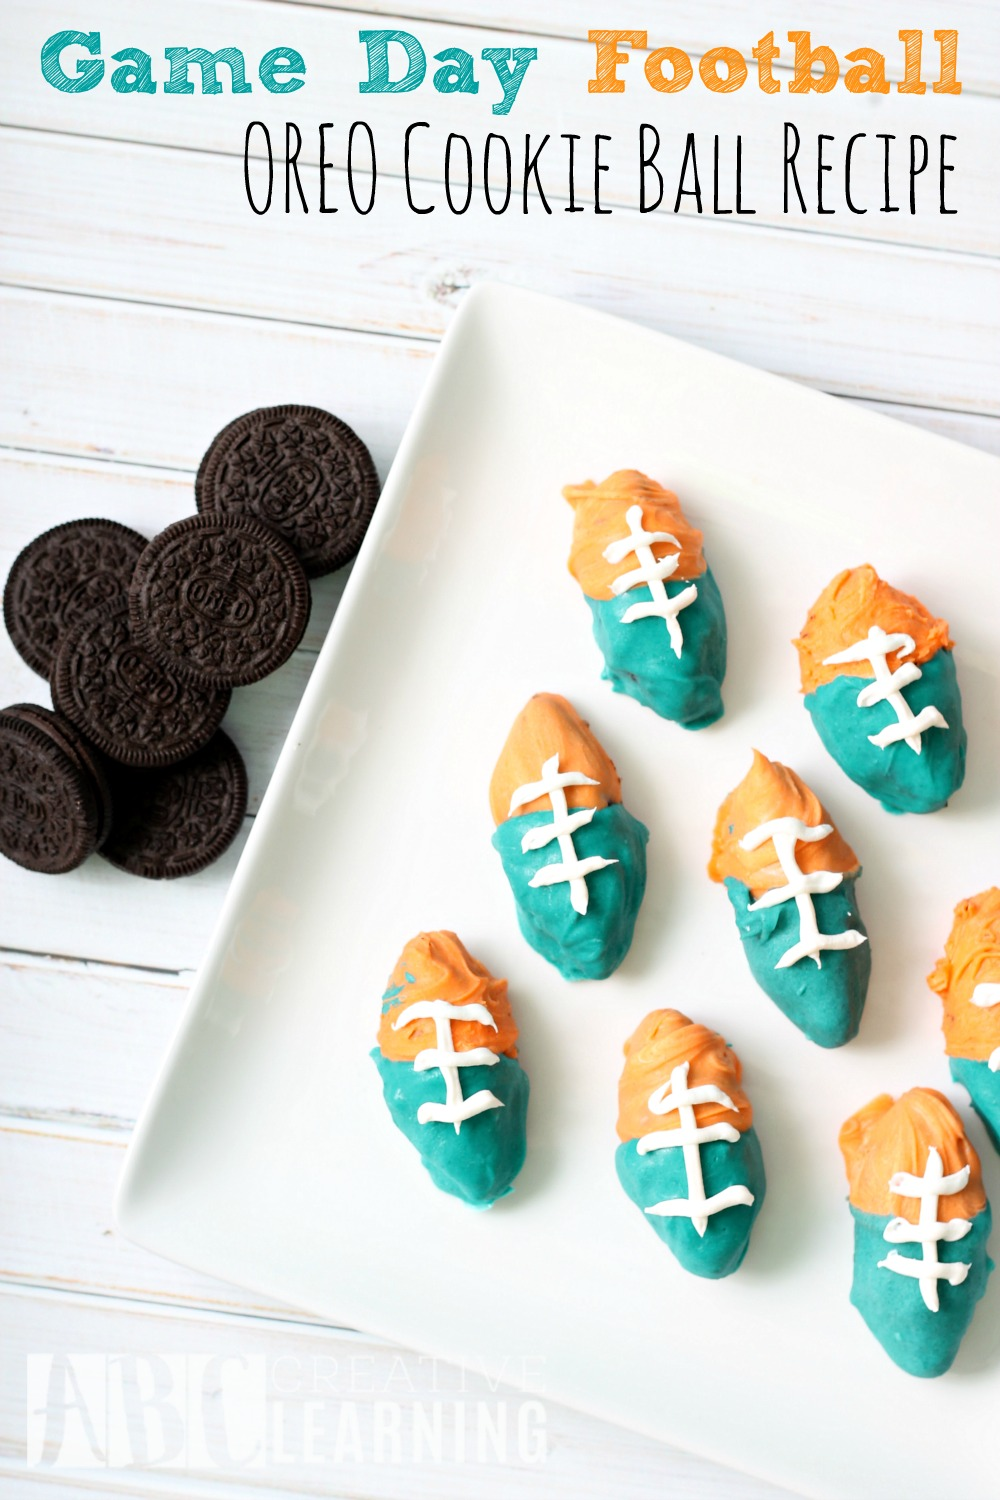 Game Day Football OREO Cookie Ball Recipe